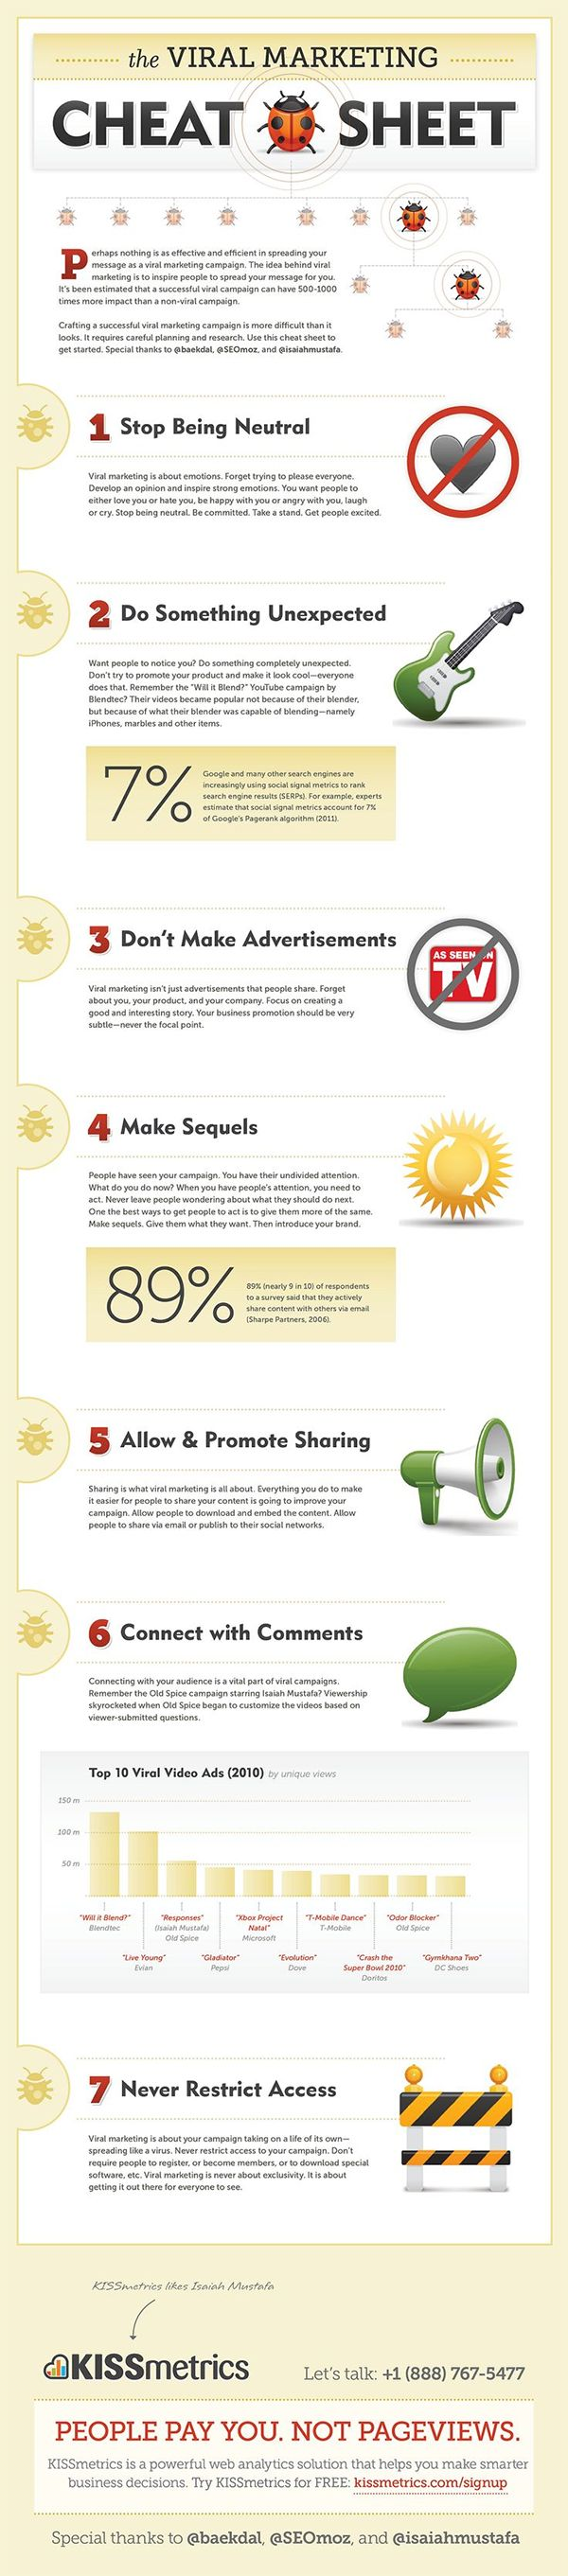 7 Steps to a Viral Marketing Campaign